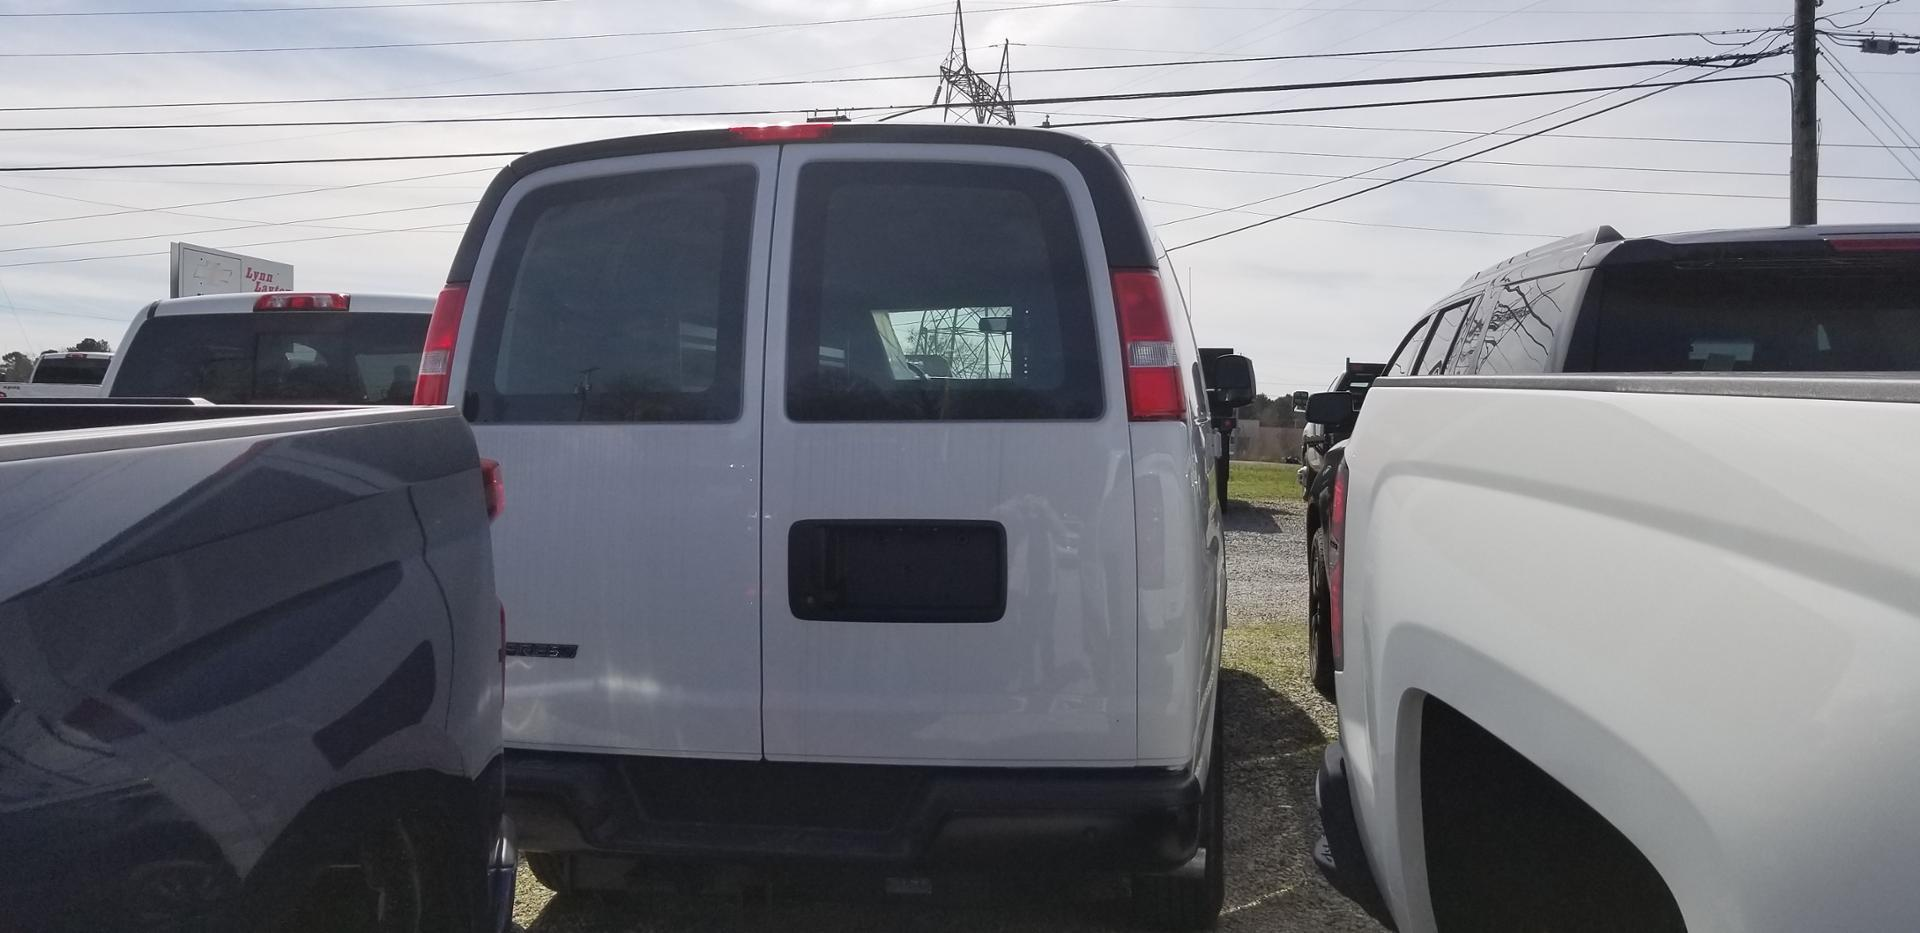 Lynn Layton Chevrolet Decatur Alabama >> New 2019 Chevrolet Express 2500 Upfitted Cargo Van for ...